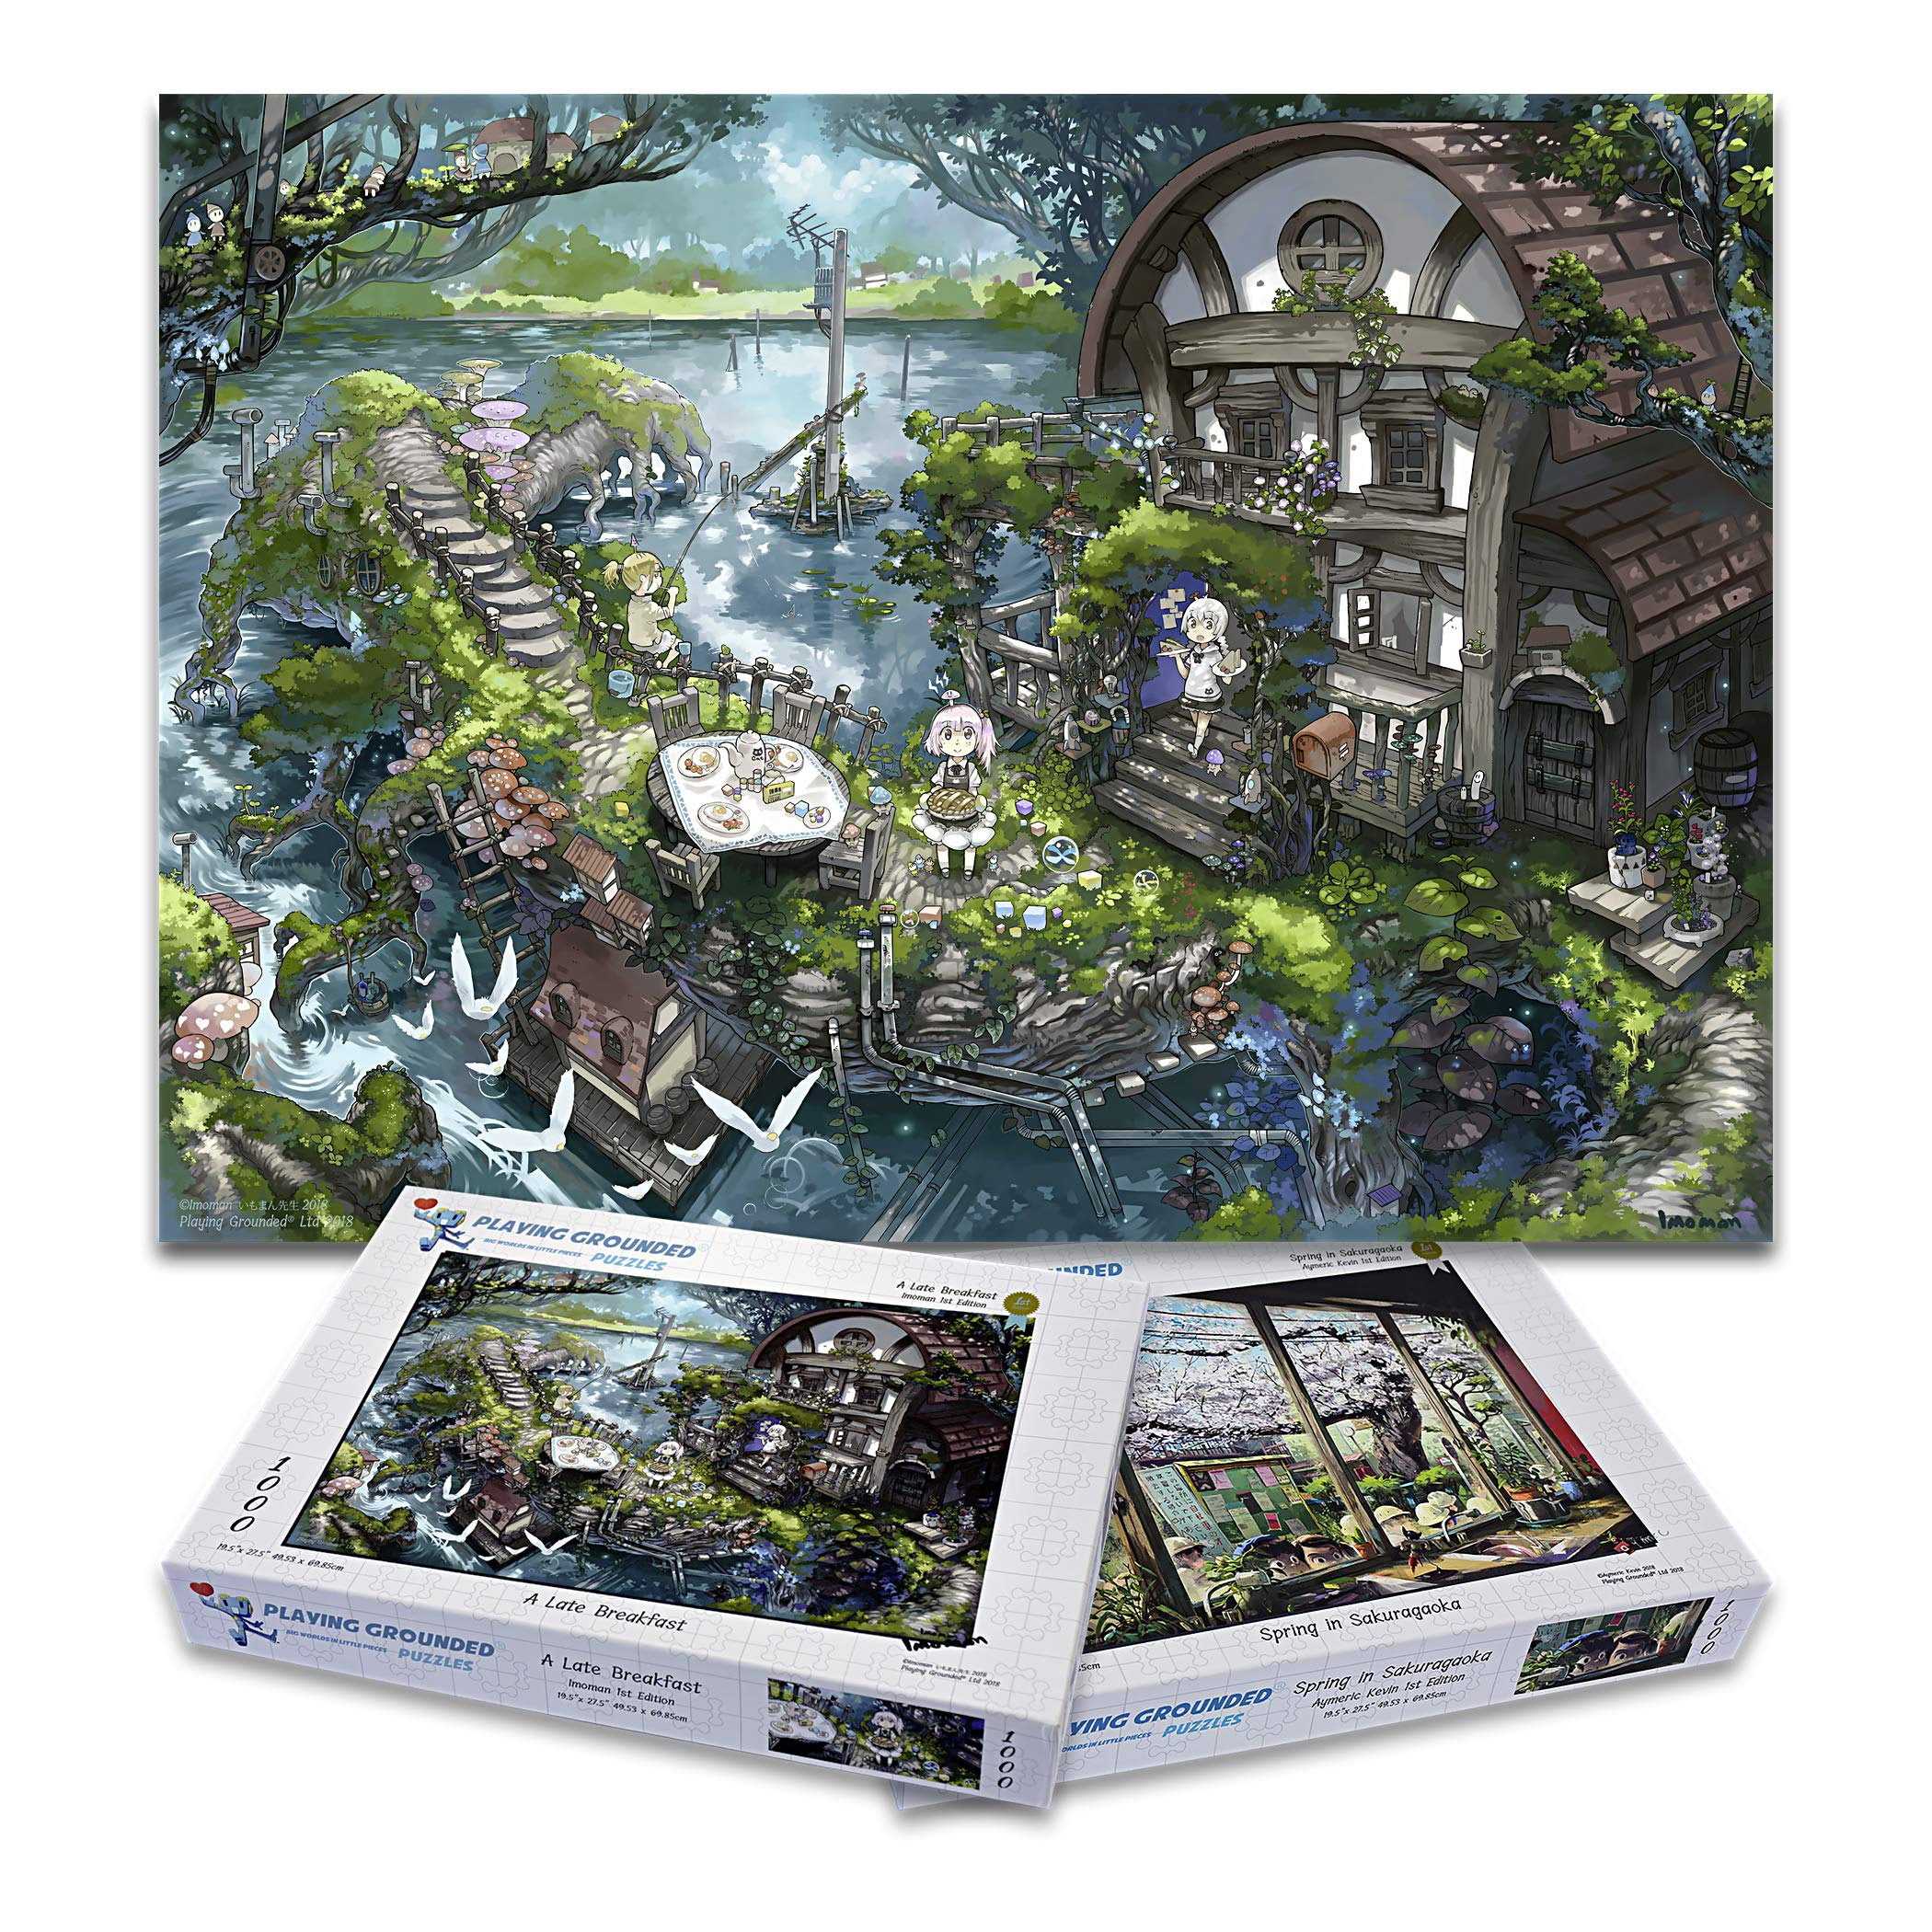 Playing Grounded Bundle Pack Limited Edition Jigsaw Puzzles 1000 Pieces A Late Breakfast and Spring in Sakuragaoka Double Pack Anime Puzzles Fantasy Puzzles, Japanese Jigsaw Puzzle